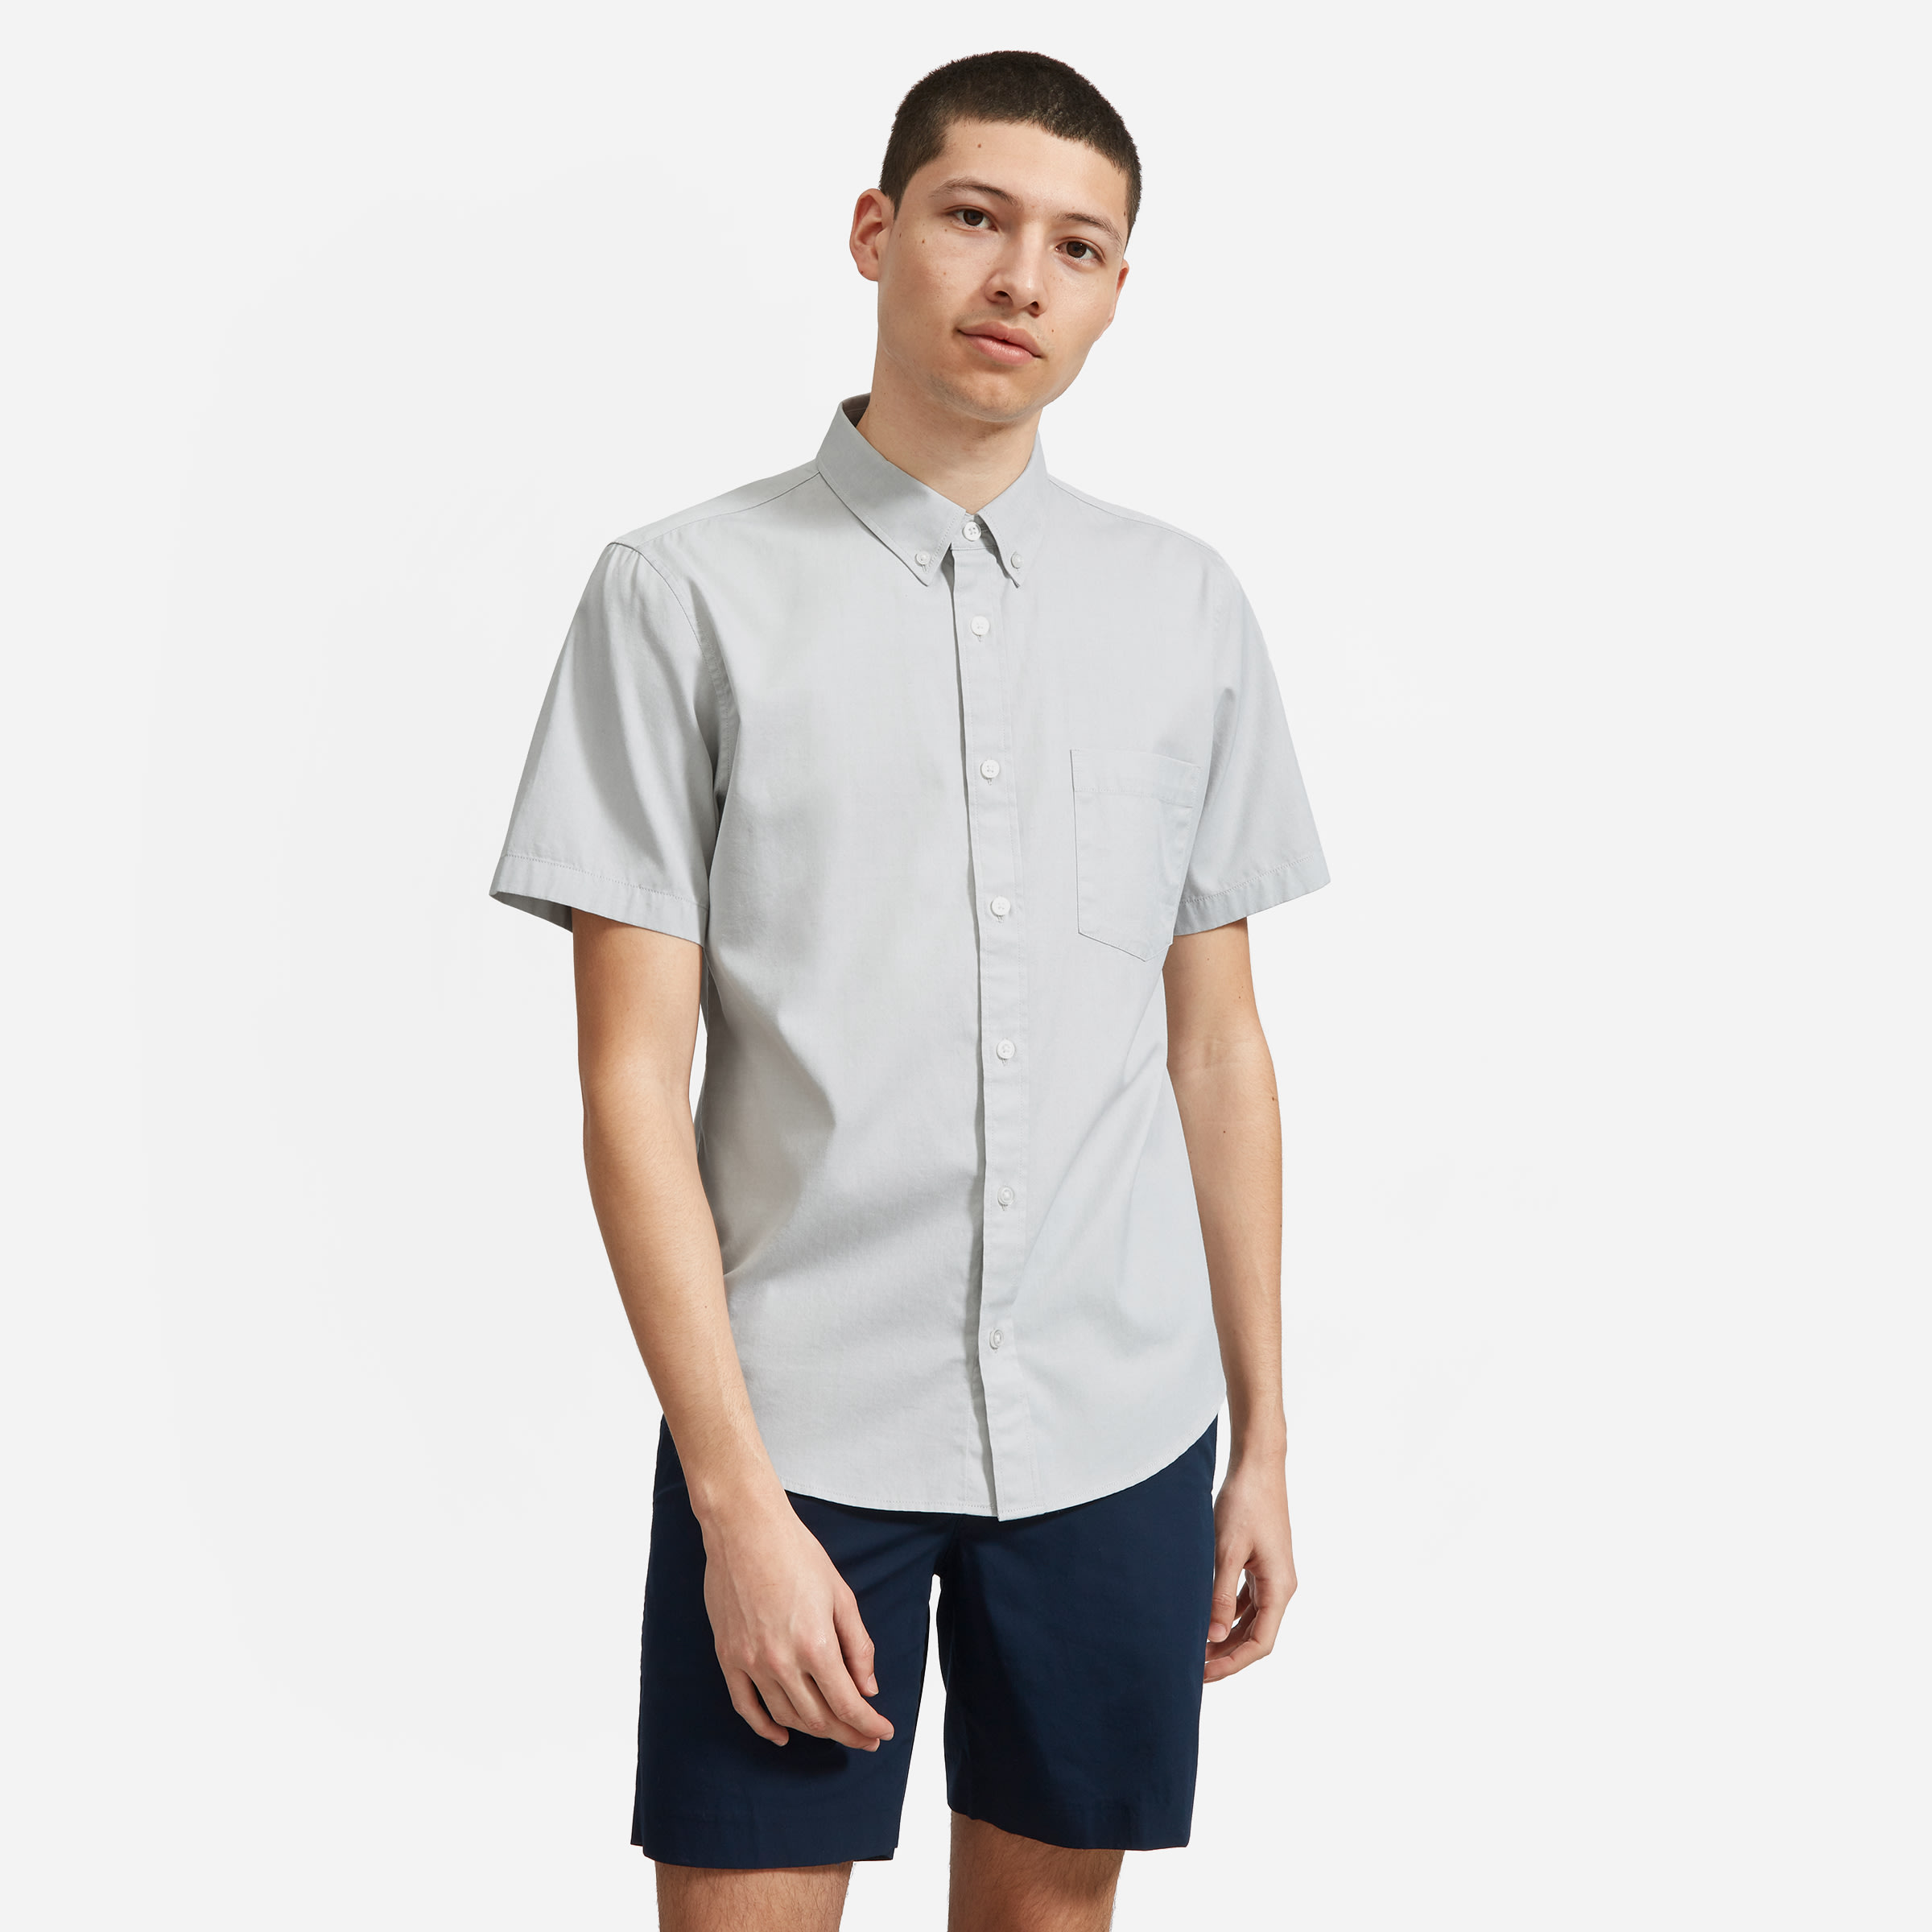 4fd4d9bb647 What Color Shirt To Wear With Light Grey Shorts | Lixnet AG